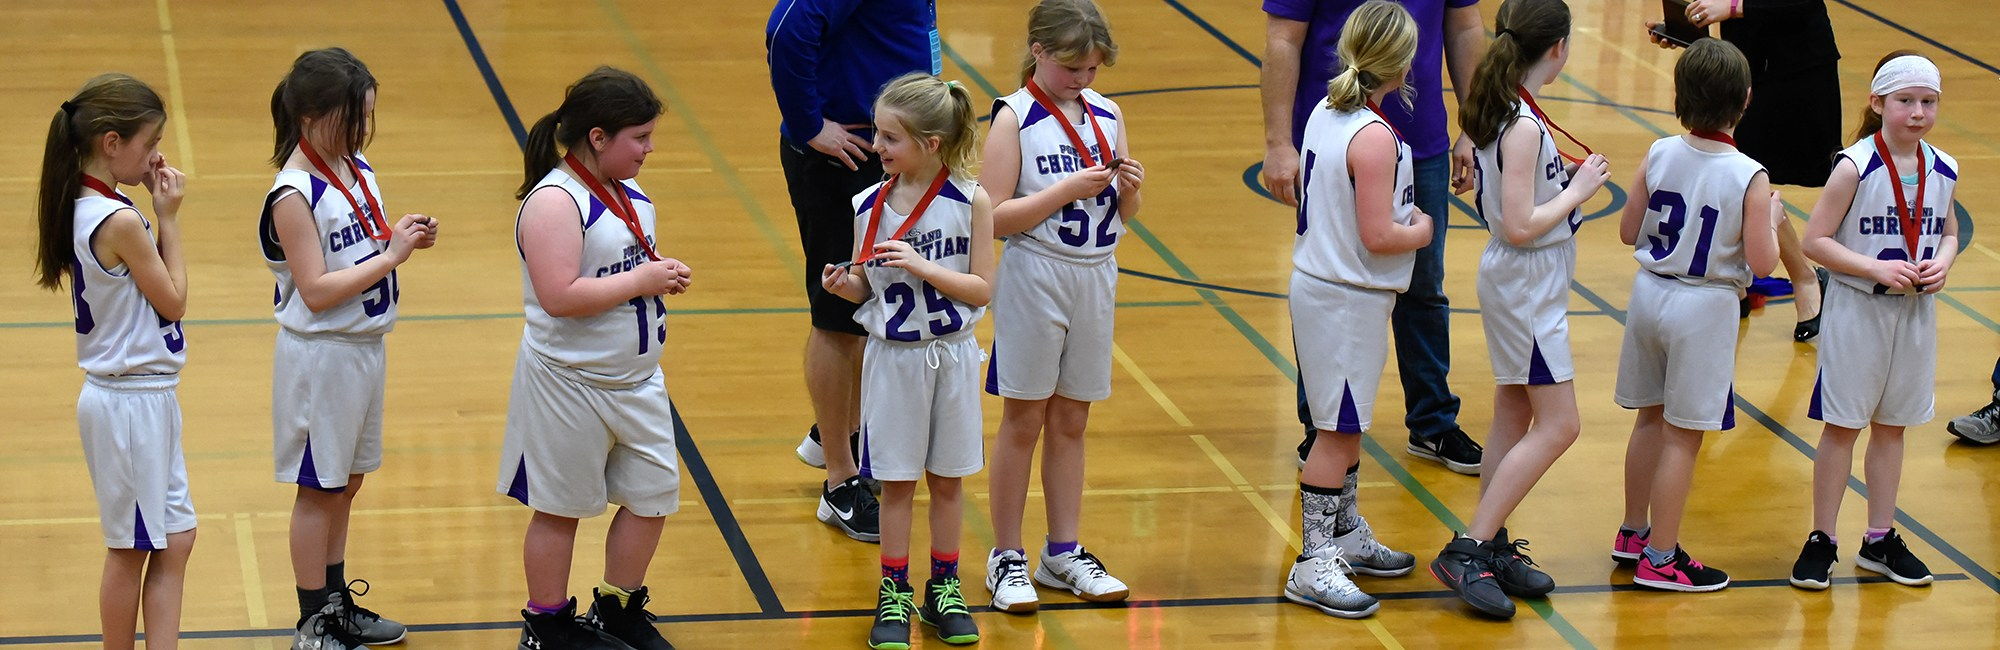 Second and Third Grade Basketball team - 2017 2nd place